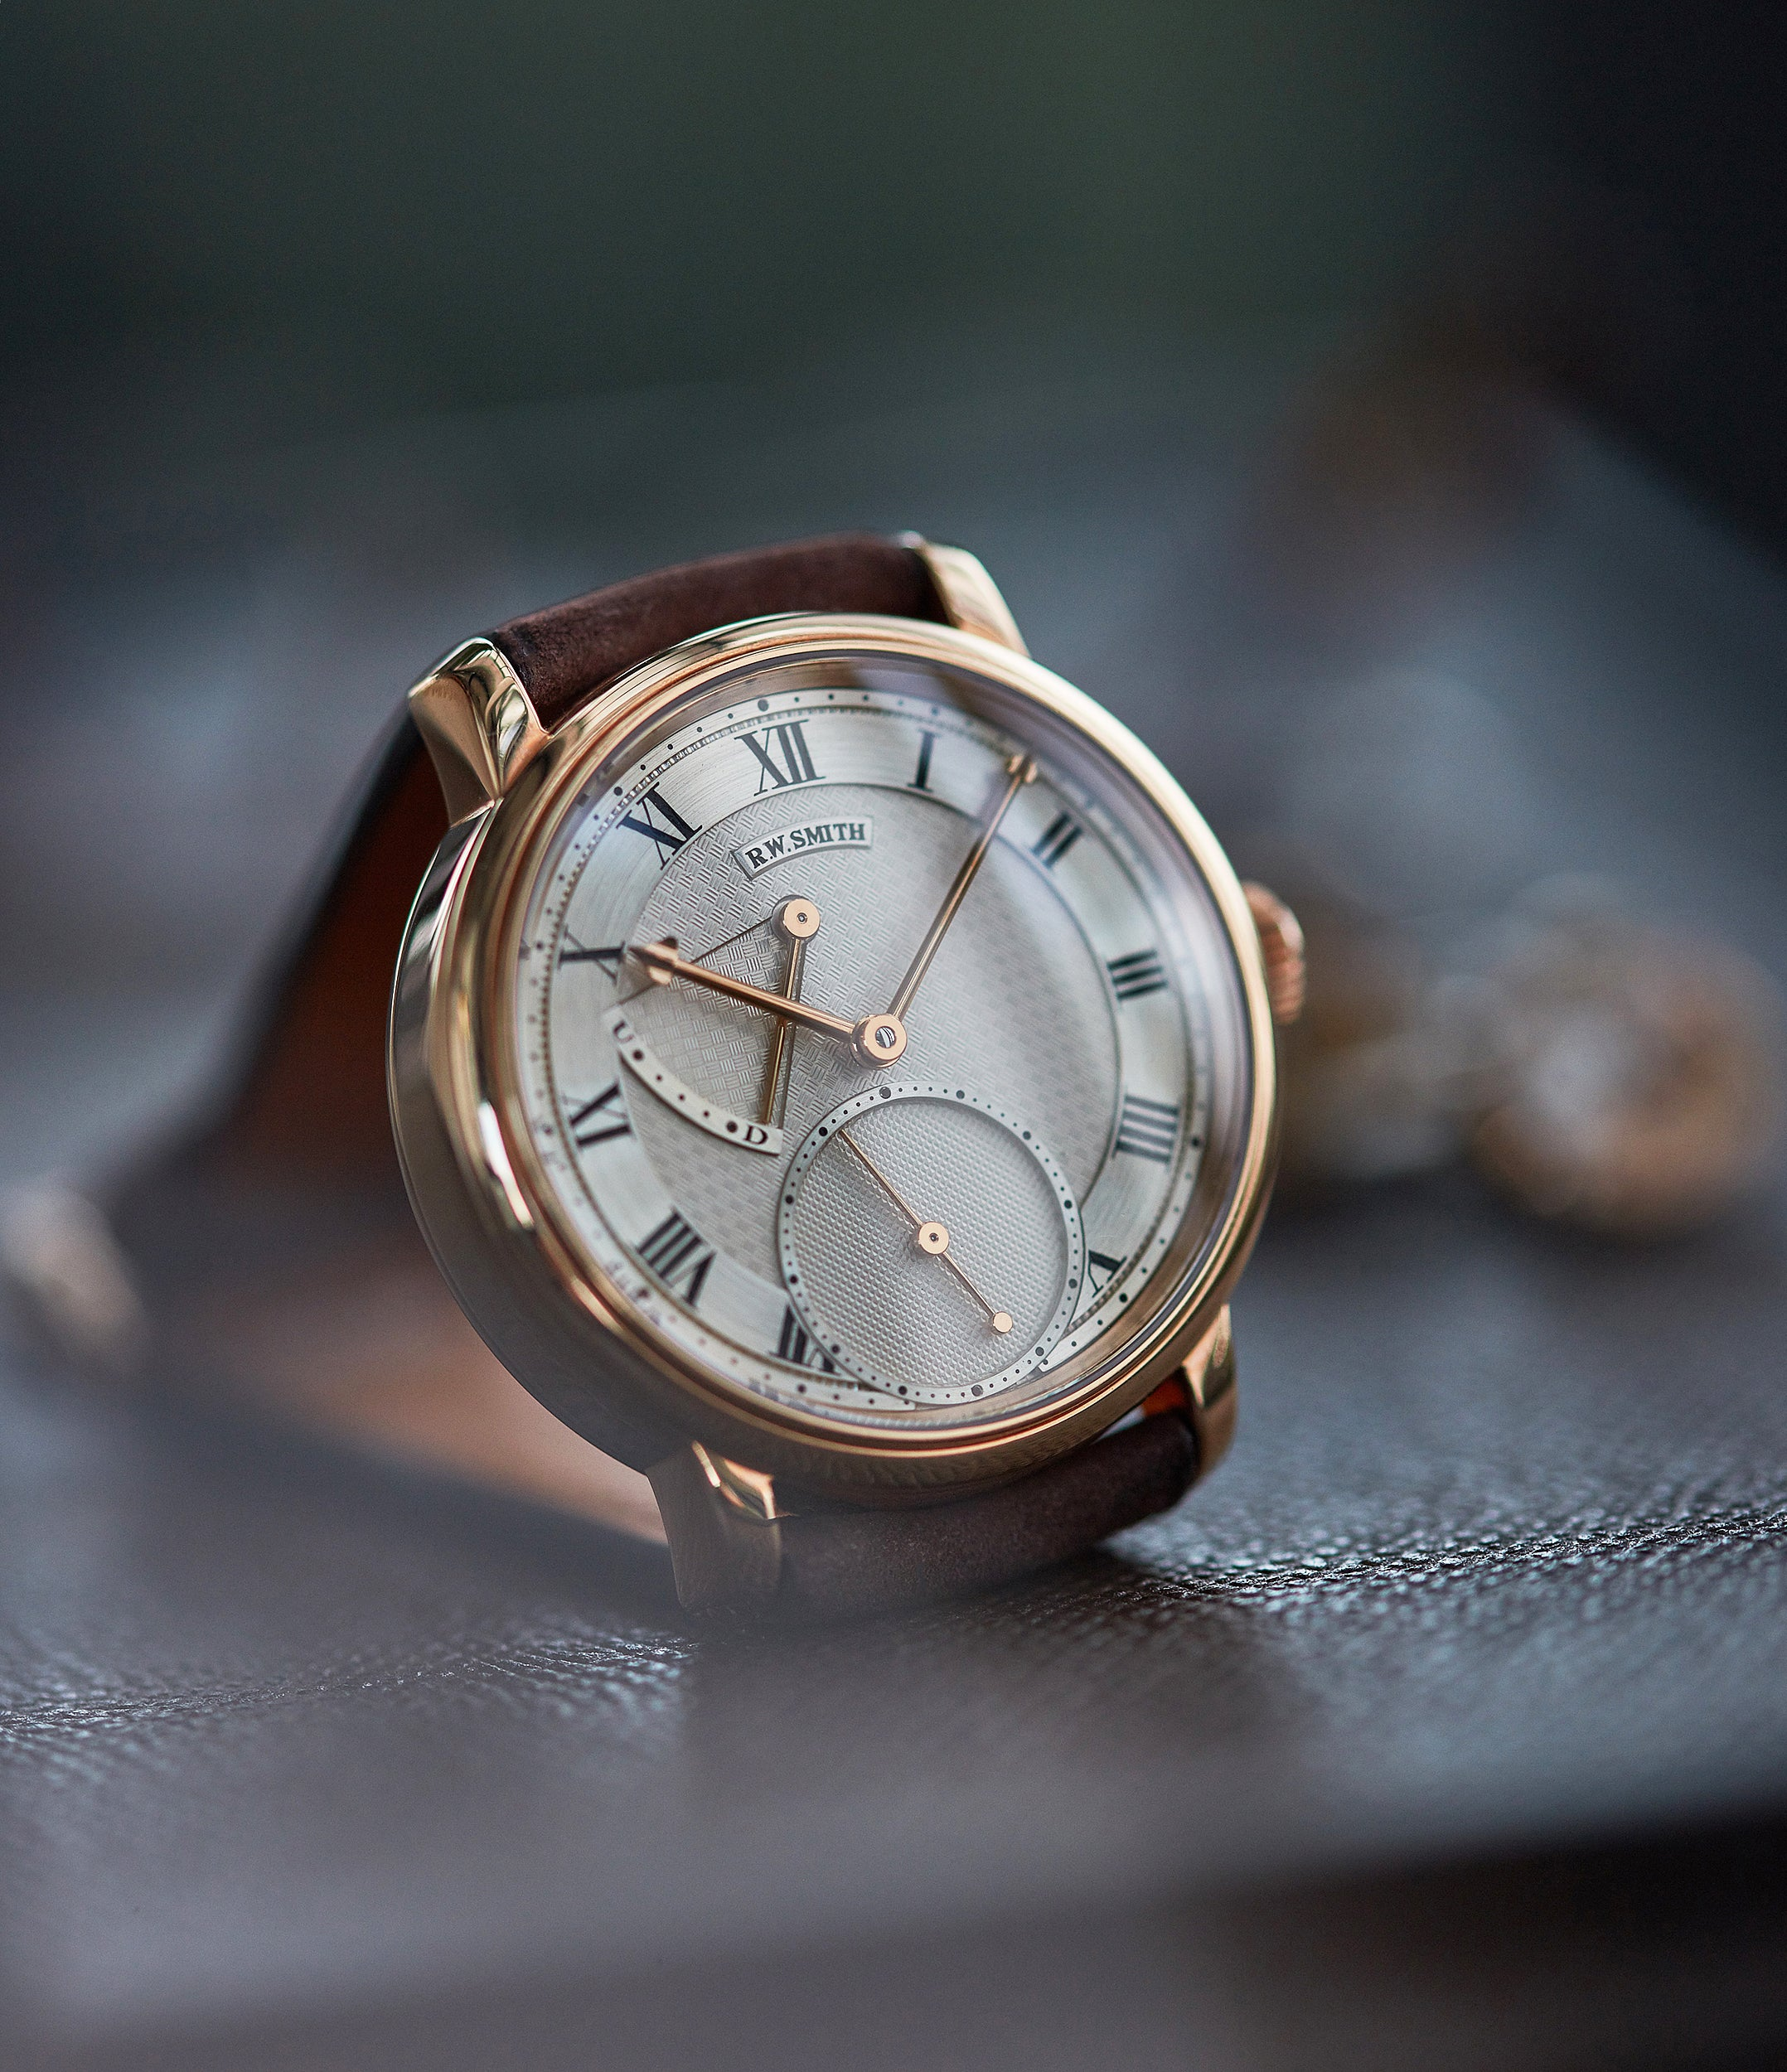 Co-Axial escapement Roger Smith Series 2 rose gold time-only dress watch British for sale online A Collected Man London